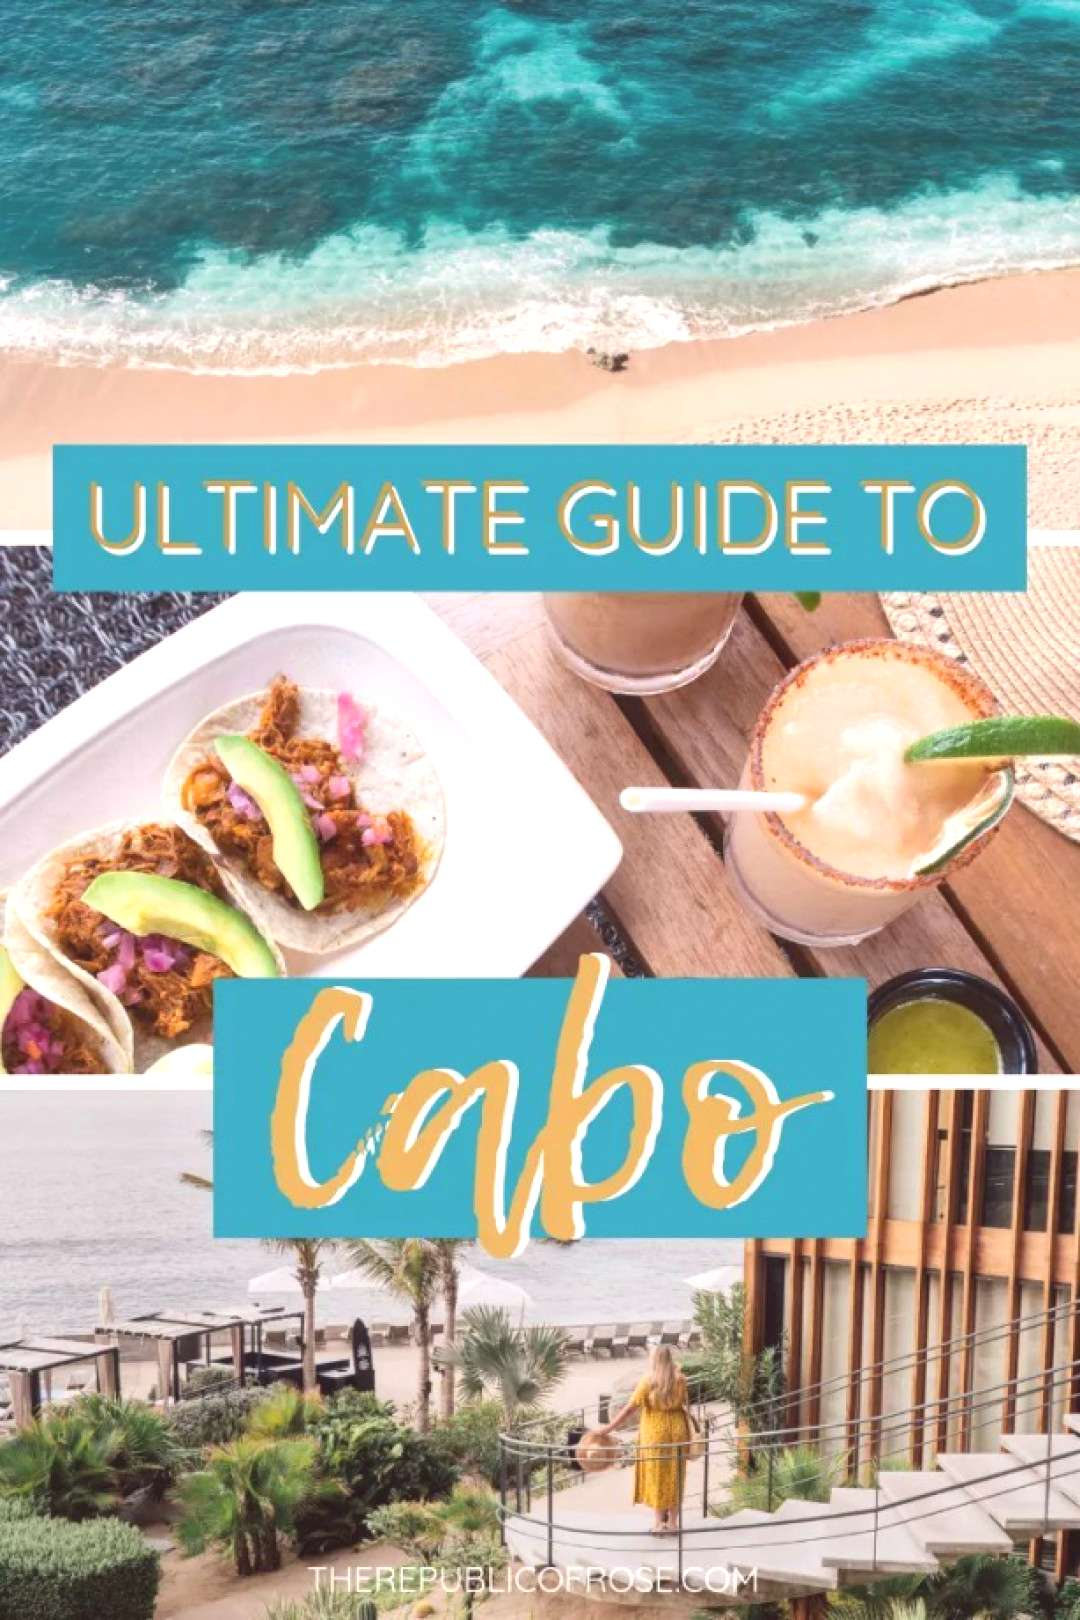 THE ULTIMATE GUIDE TO CABO SAN LUCAS - The Republic of Rose |